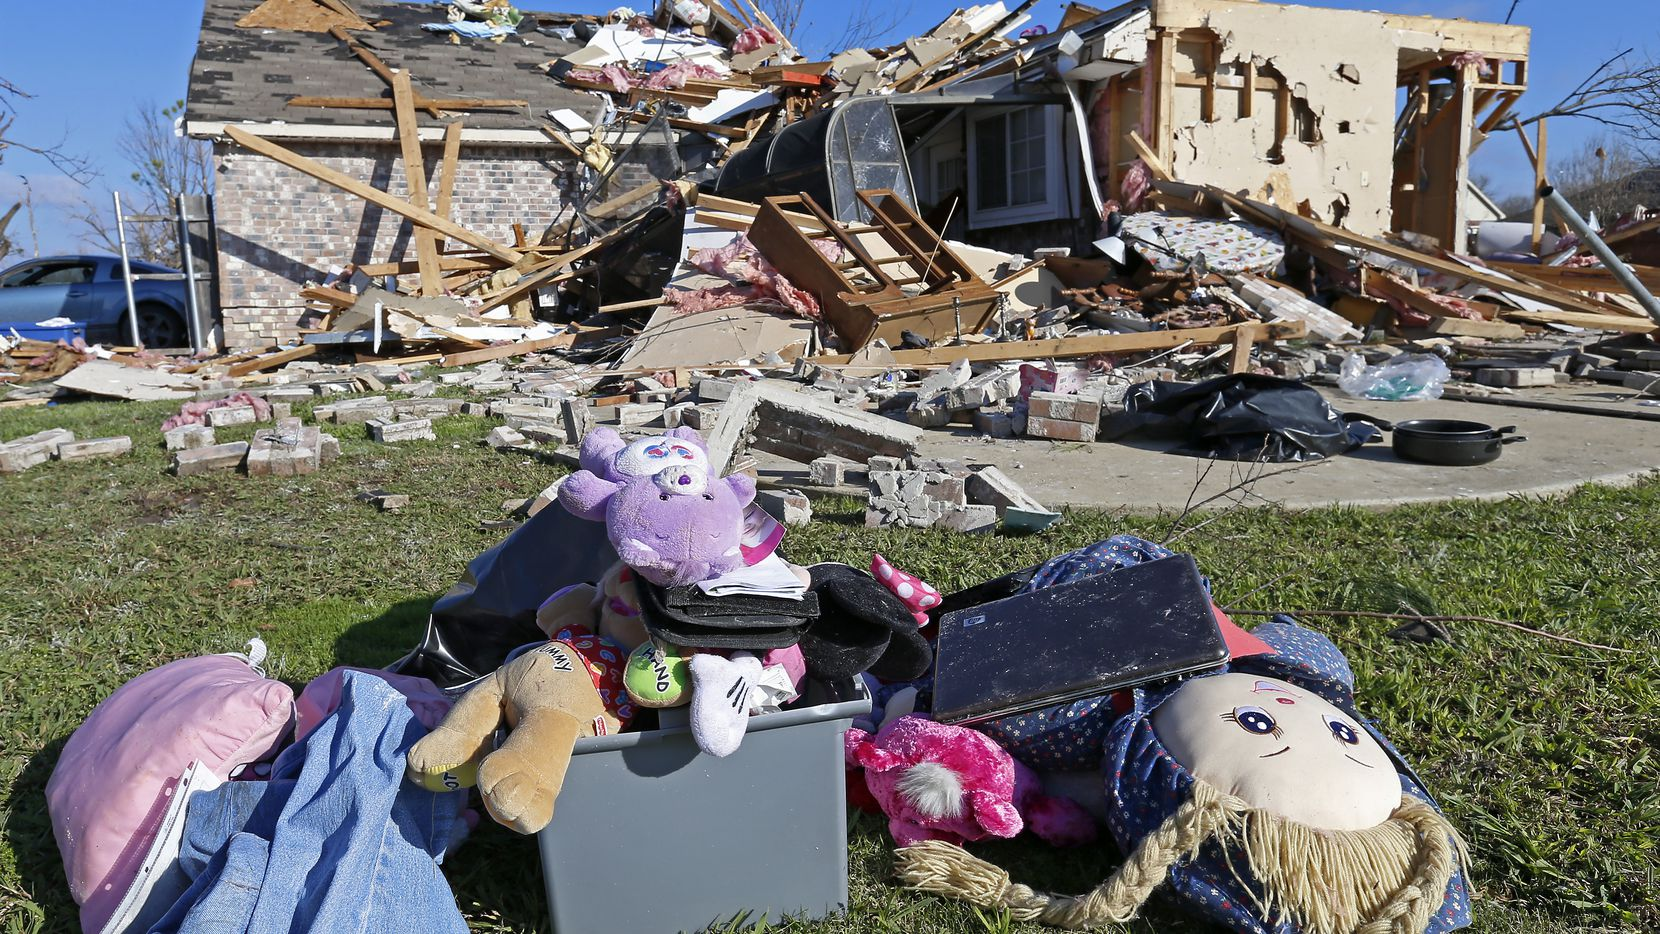 Damage of a house is seen in the aftermath of a Dec. 26, 2015 tornado in Rowlett.